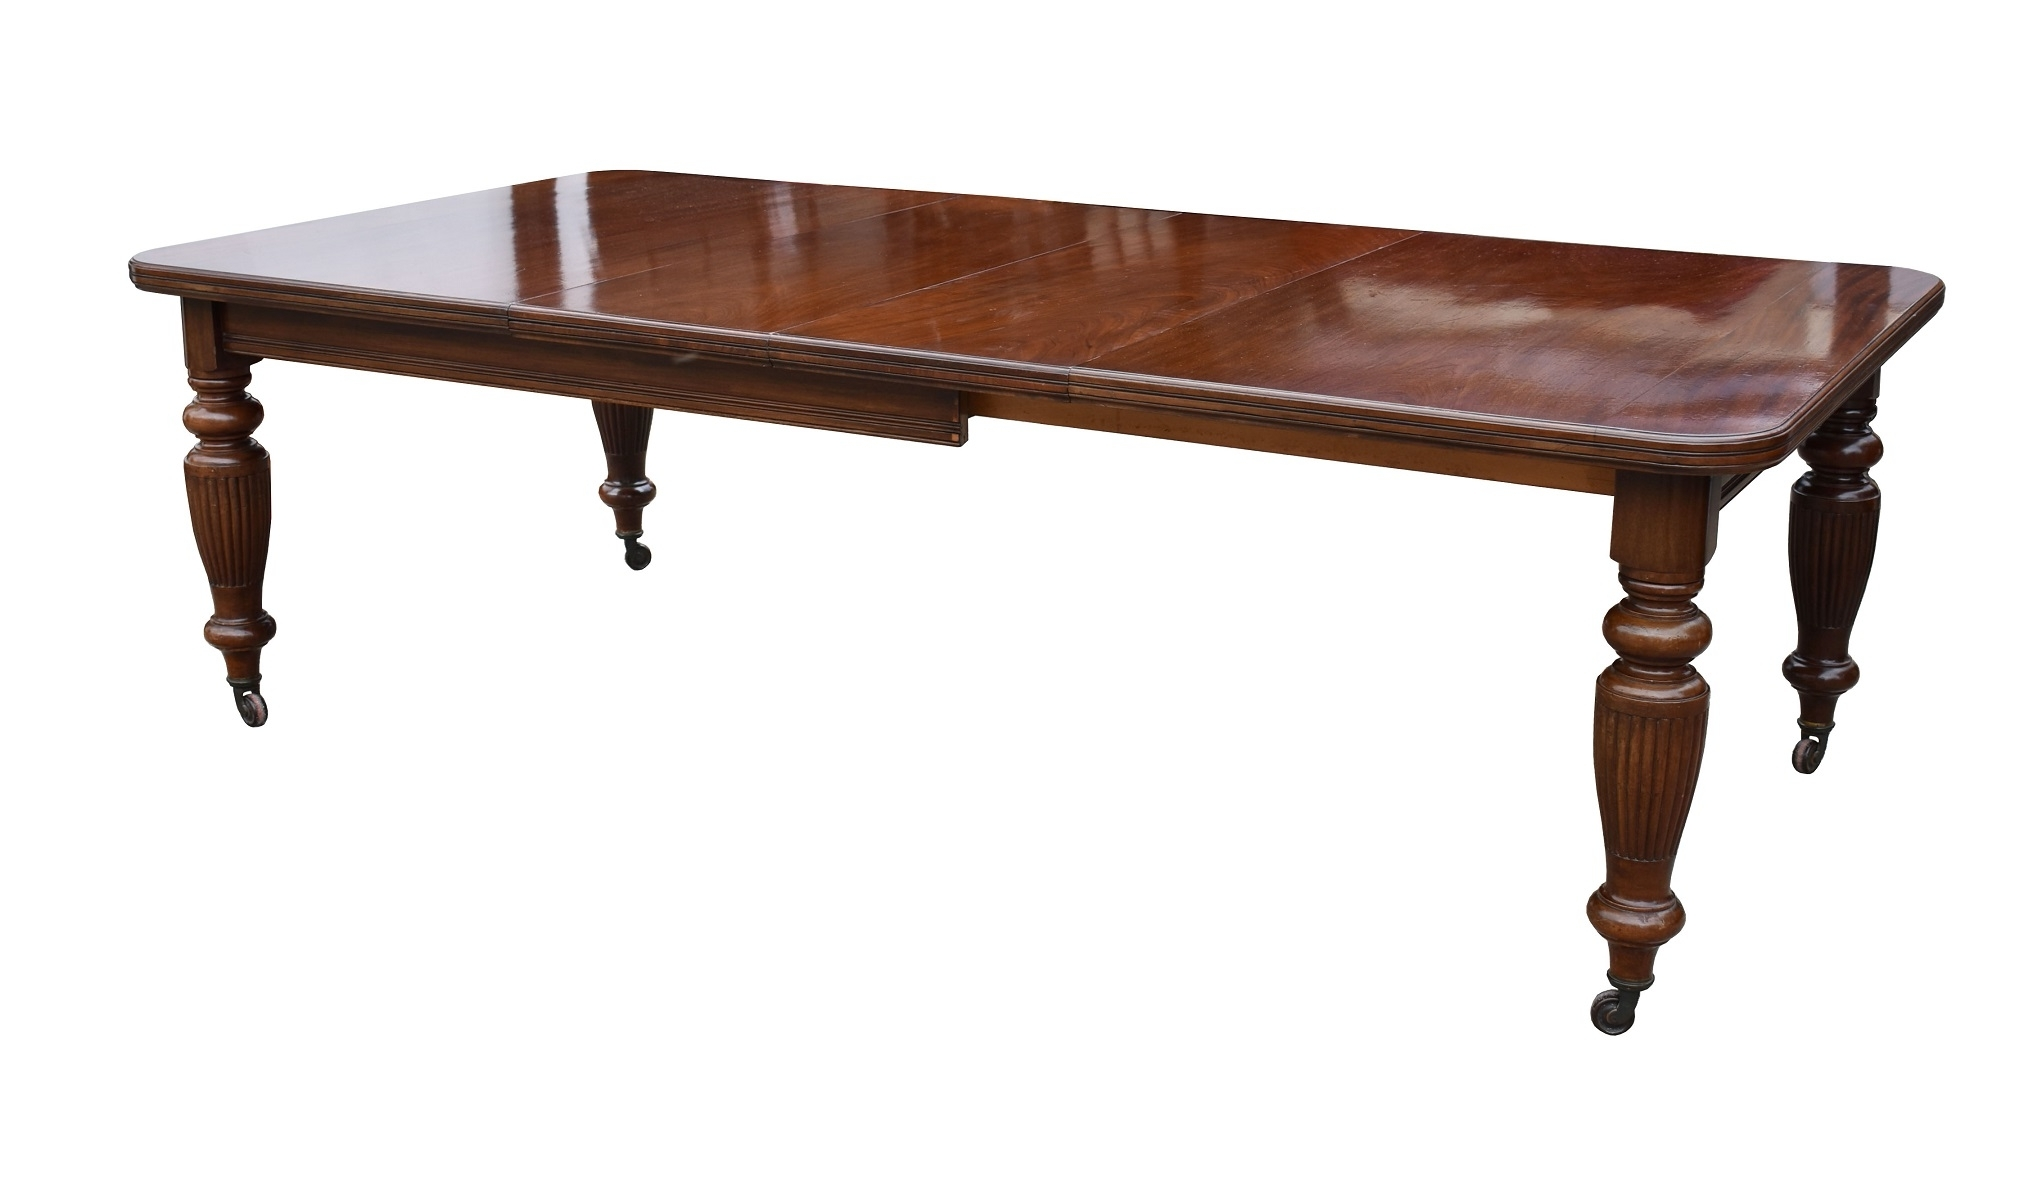 Victorian Mahogany Extending Dining Table Regarding 2017 Mahogany Extending Dining Tables (View 24 of 25)